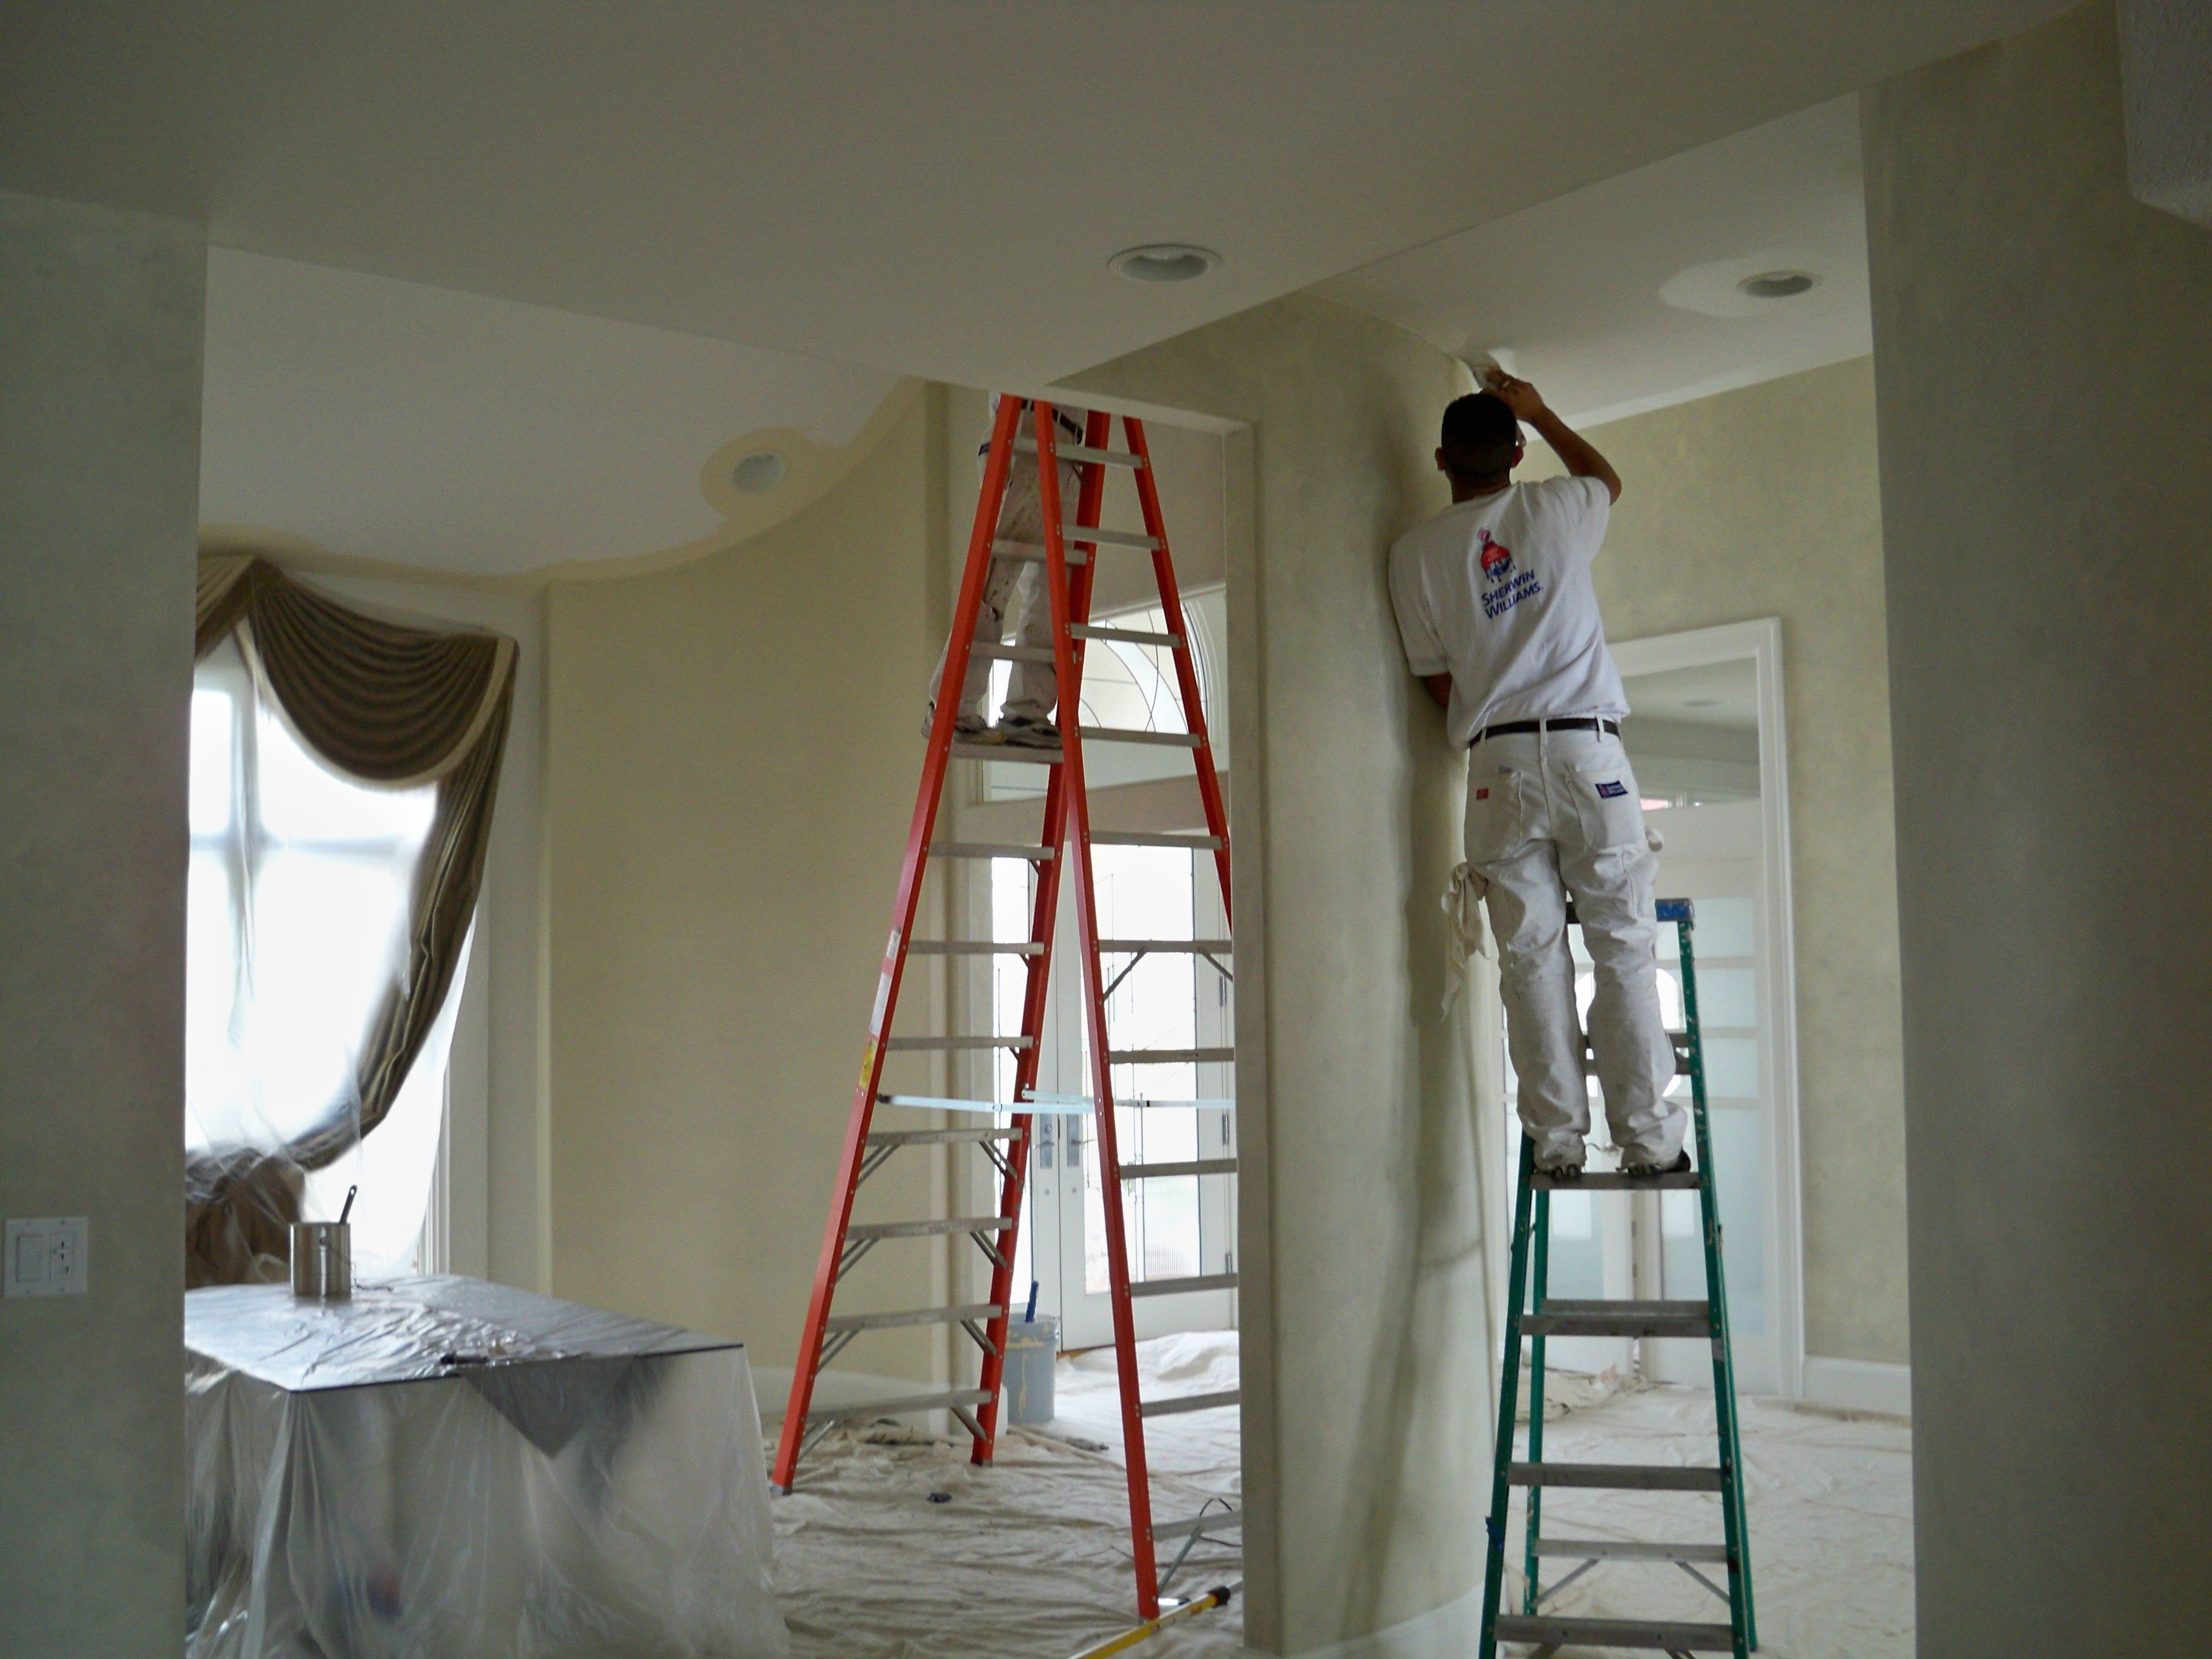 People painting houses - House Painters Painting We Listen To Our Customers And Make Sure They Receive Exactly What They